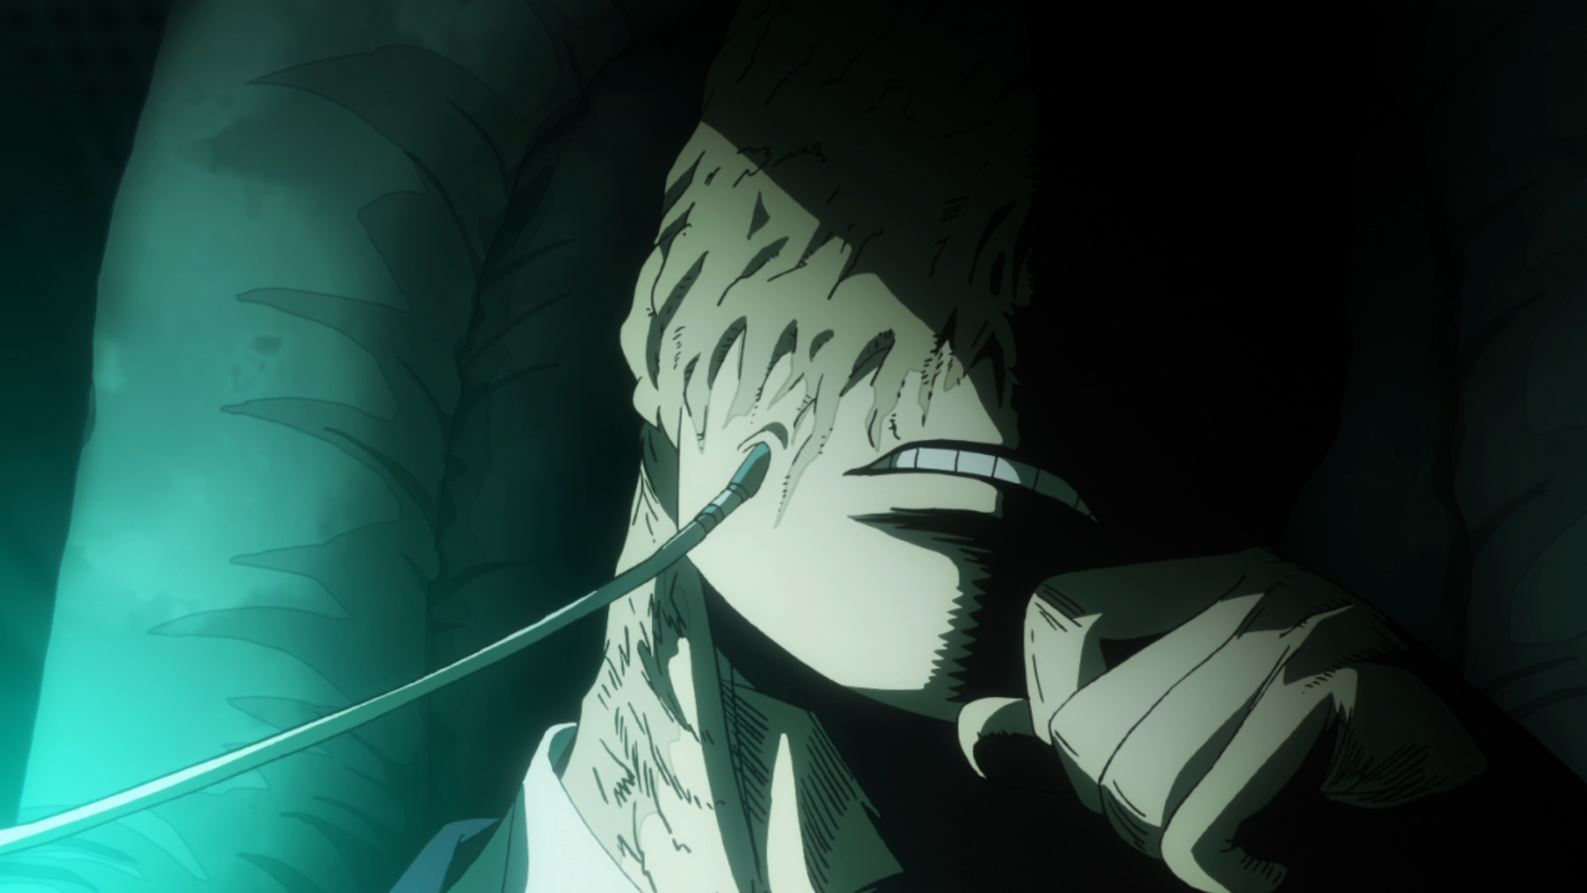 Who is Deku's Dad? Is it All For One?